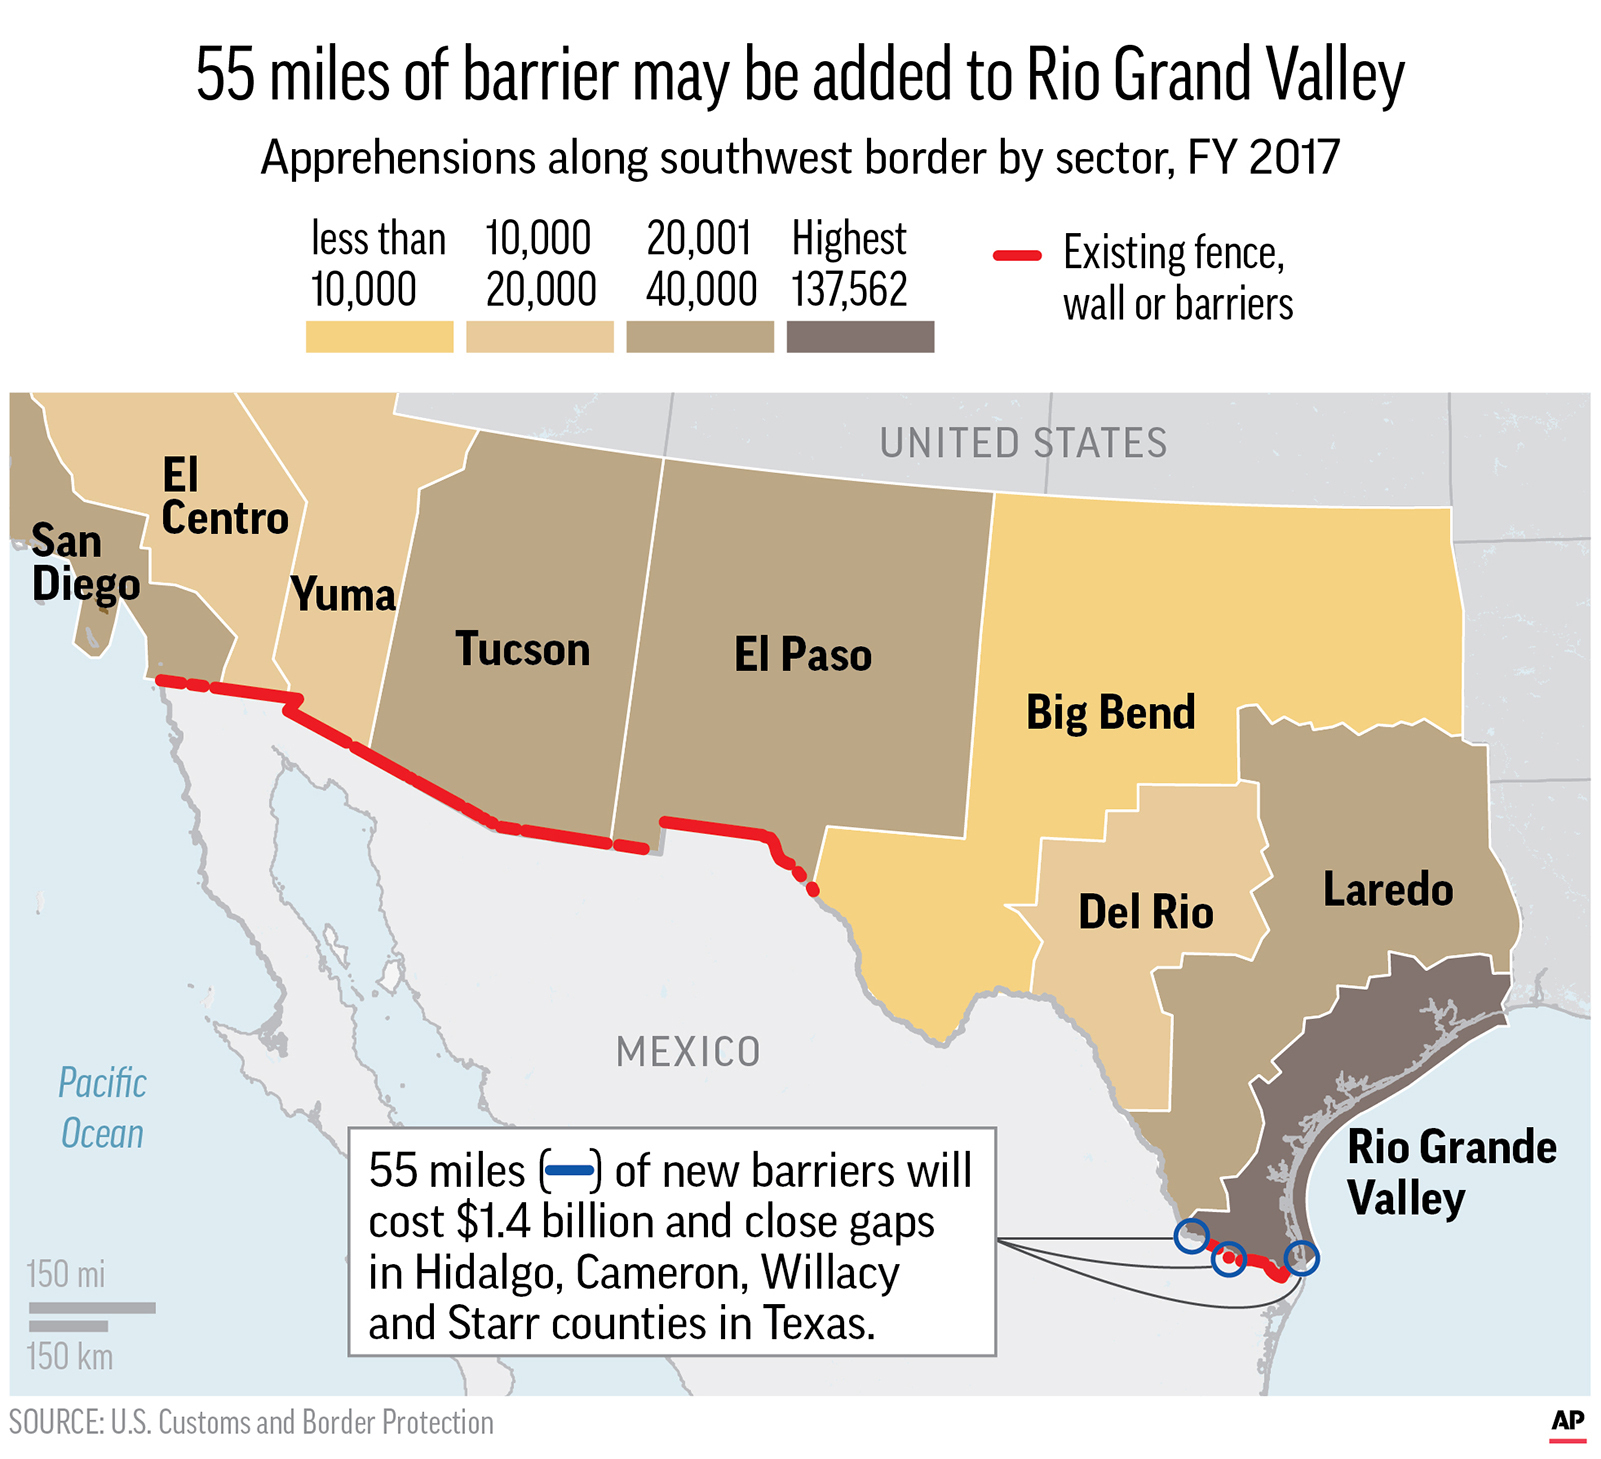 Graphic shows existing border fence and barriers built and apprehensions by border sector; 3c x 4 1/2 inches; 146 mm x 114 mm;